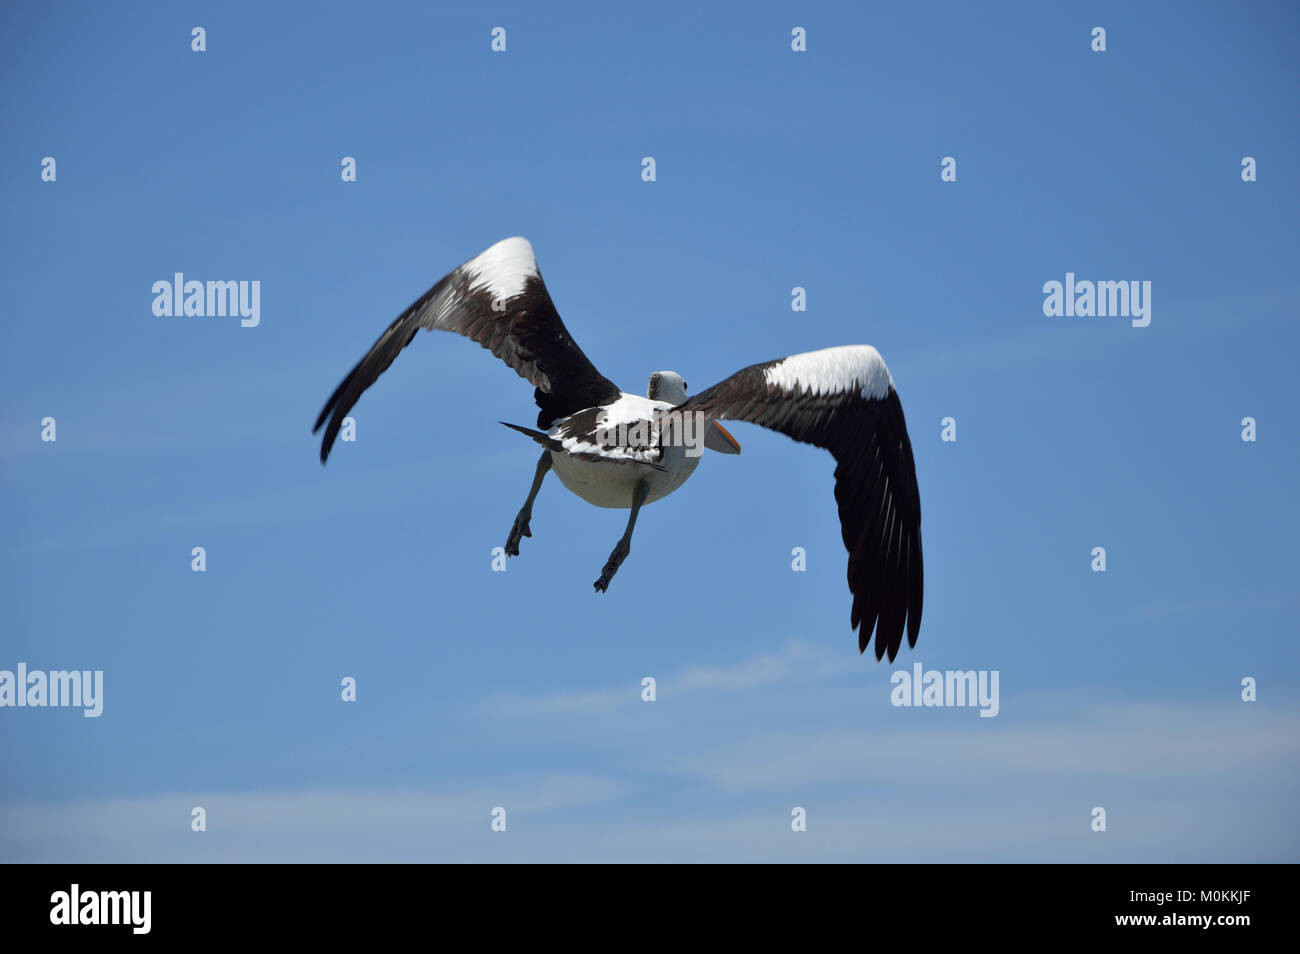 Pelican in half flight with wings half extended. - Stock Image